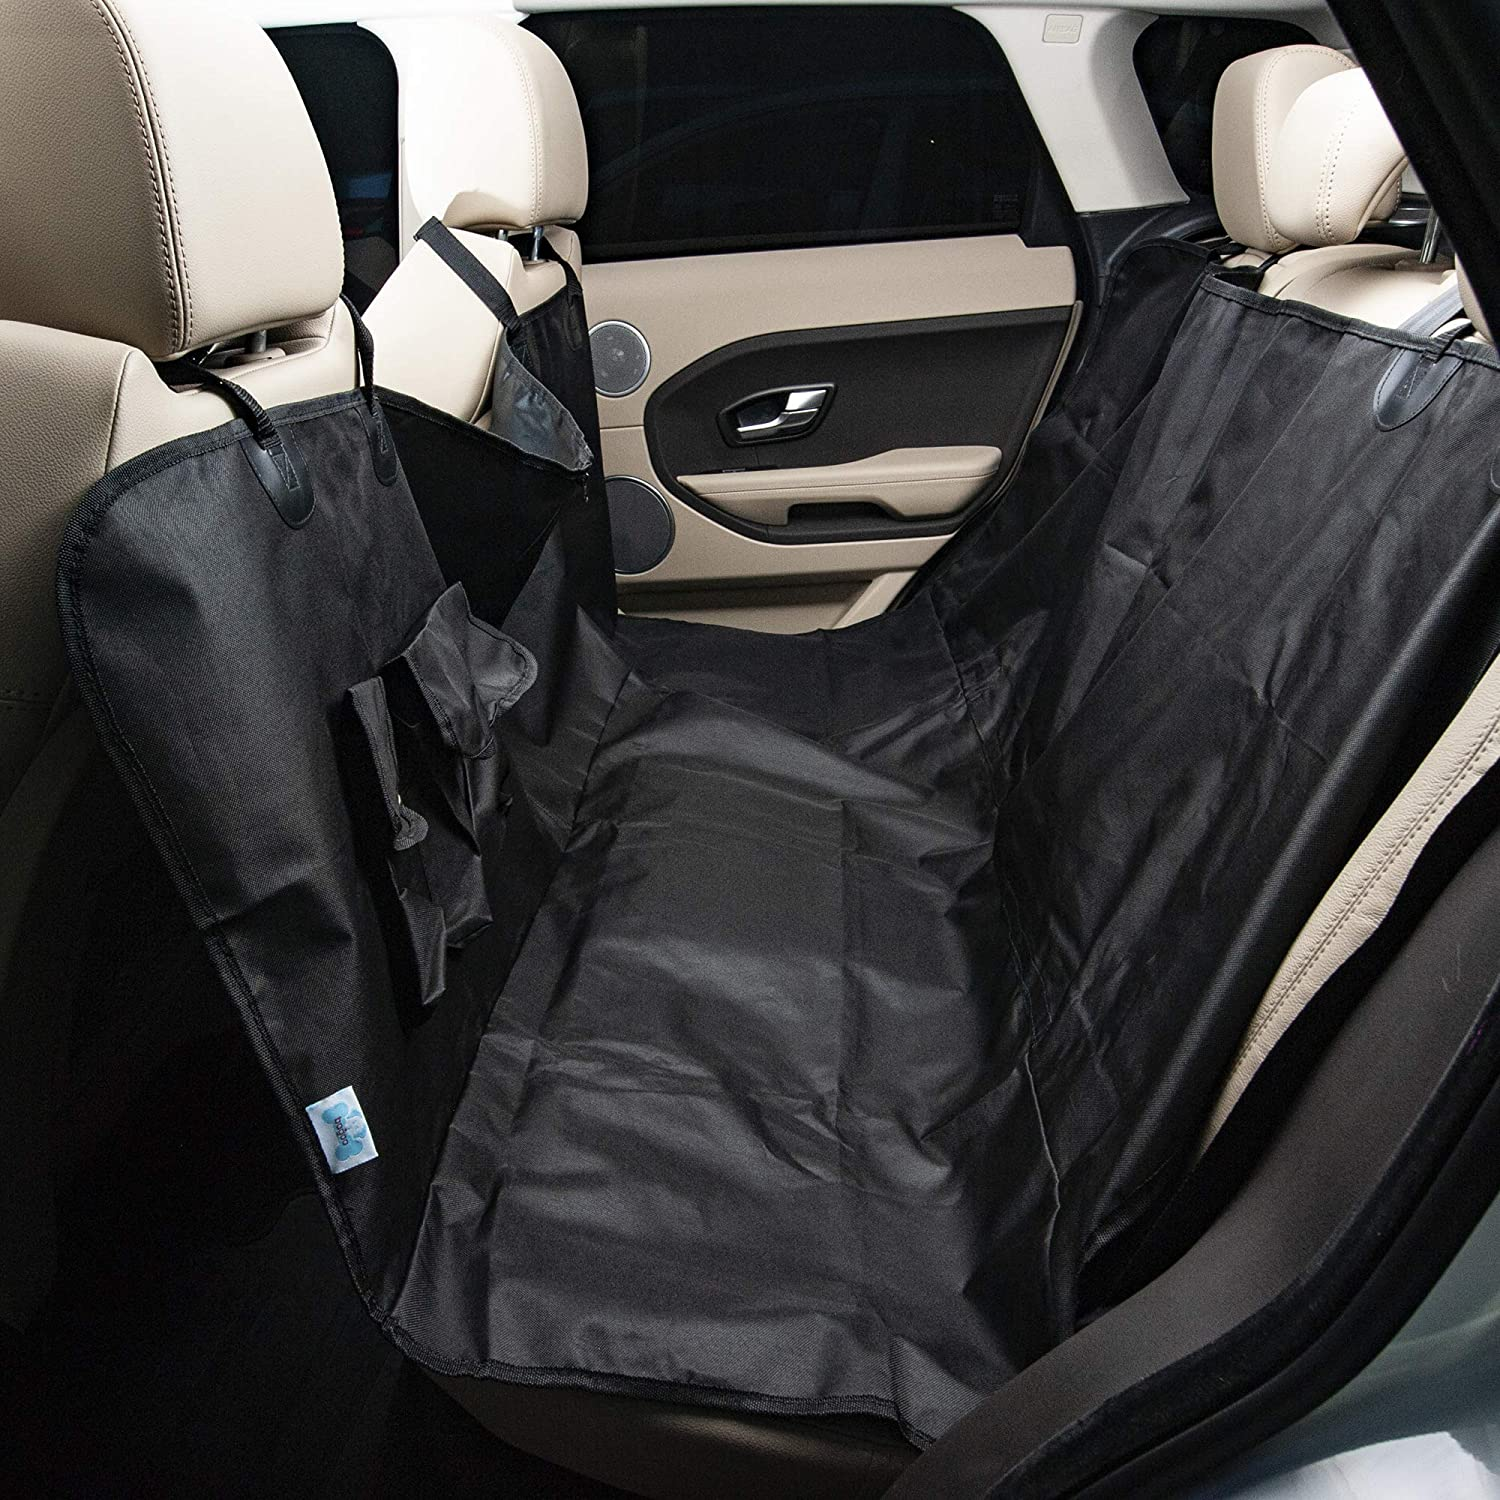 Bagoo Pets Seat Cover for Cars, SUVs and Trucks  Waterproof and Hammock Congreenible  Includes Accessory Pouch  for Small, Medium, and Large Pets, Dogs and Cats.